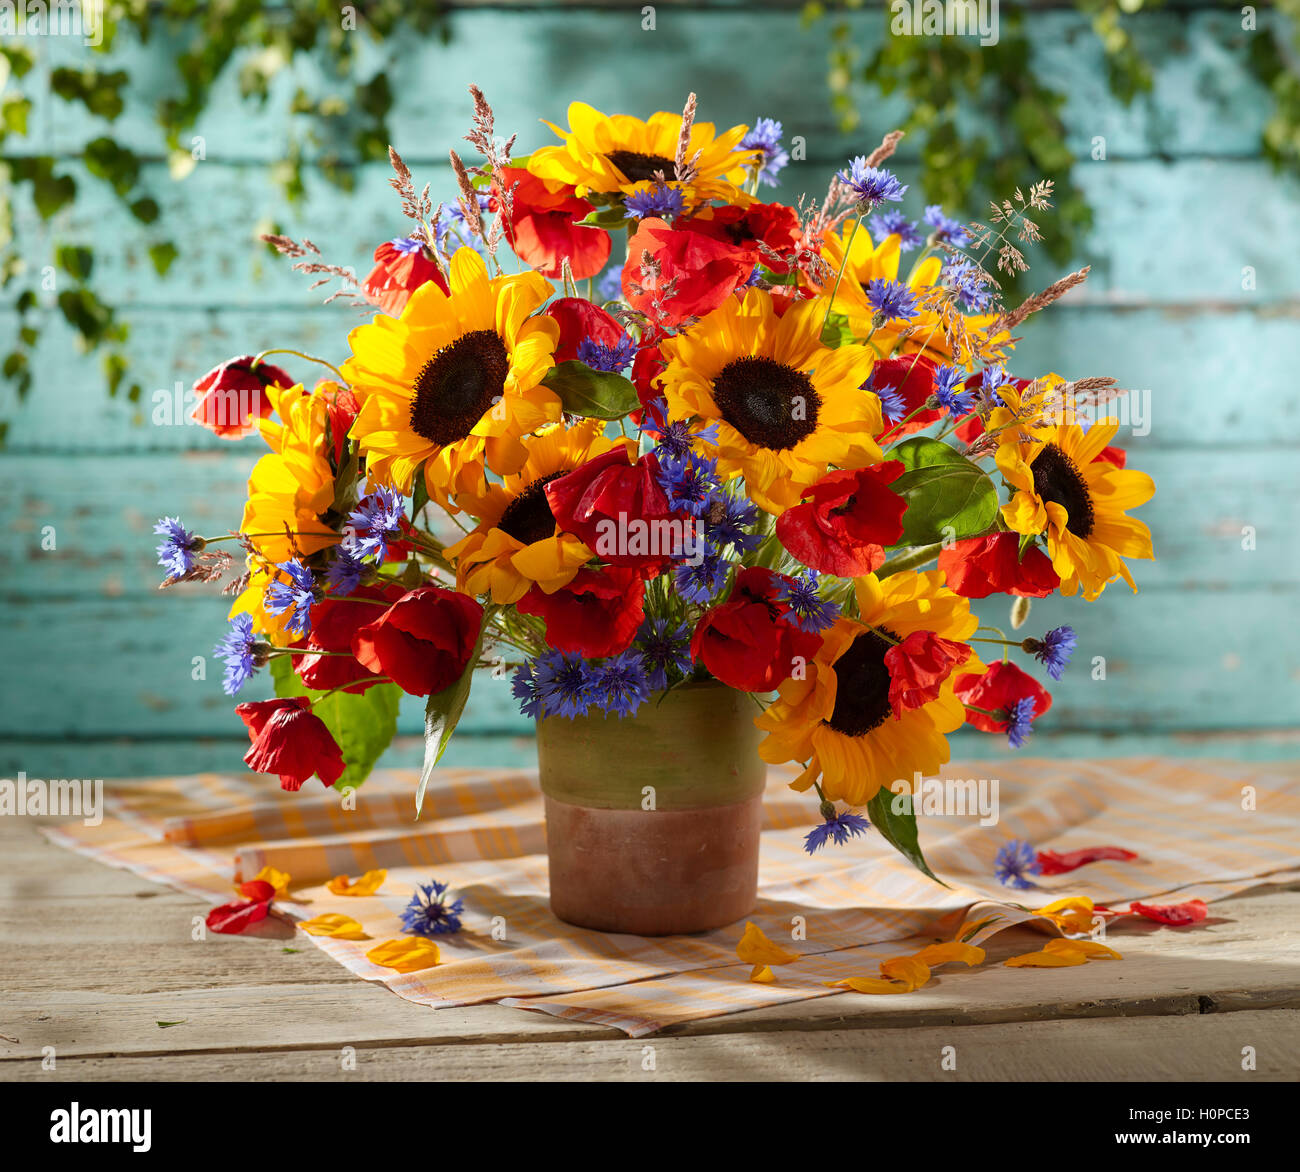 blumenstrau mit sonnenblumen mohnblumen kornblumen stockfoto bild 120965323 alamy. Black Bedroom Furniture Sets. Home Design Ideas